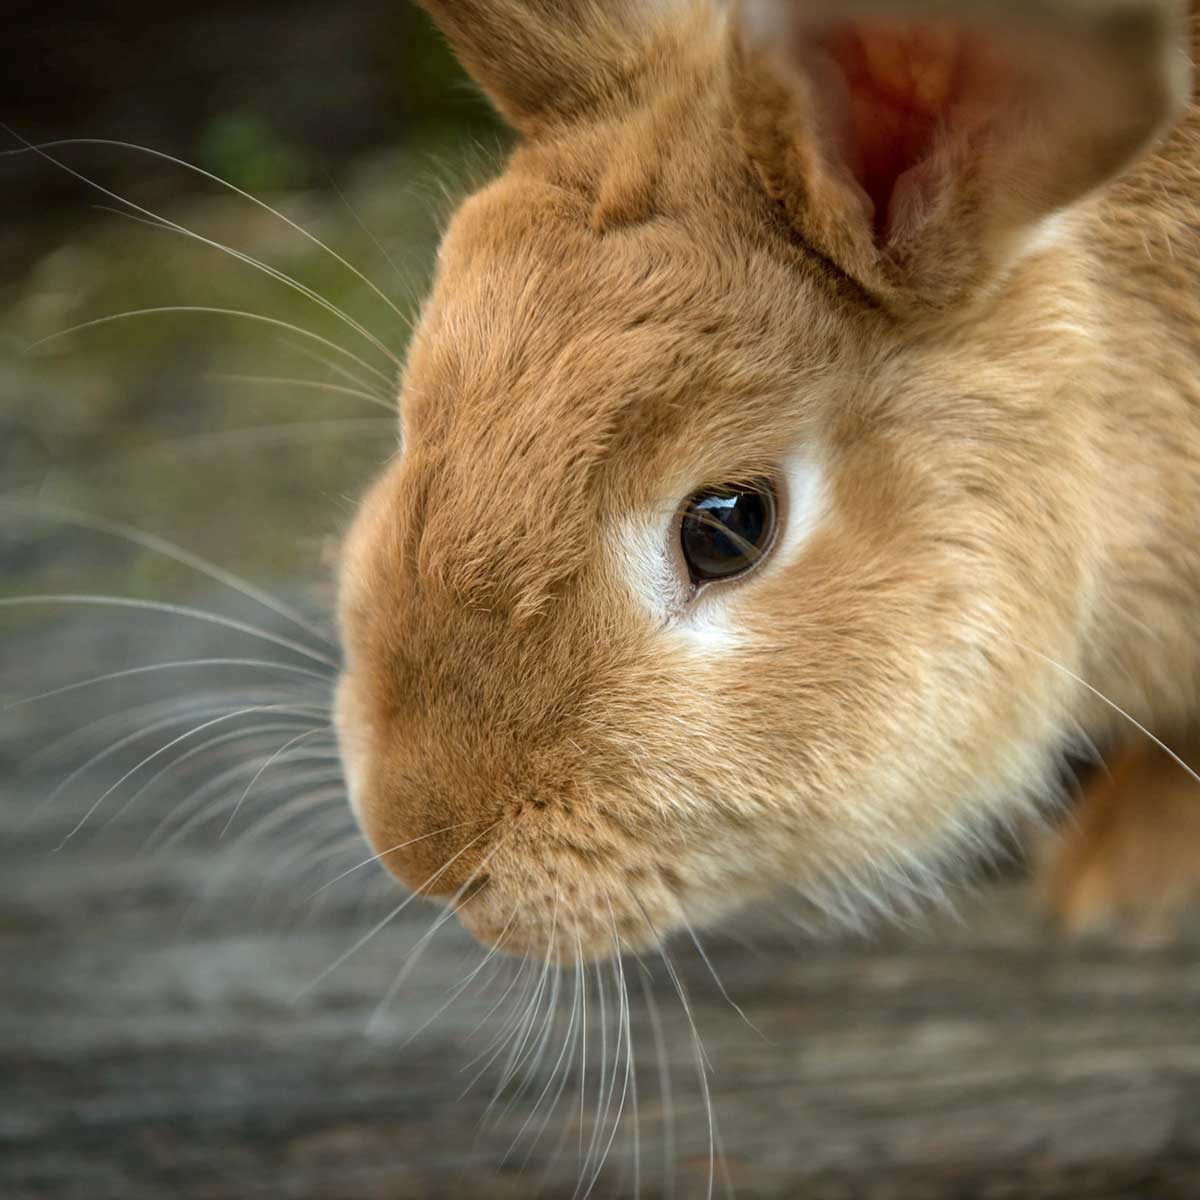 Rabbit Eye Problems And Treatments   Lafeber Co.   Small Mammals